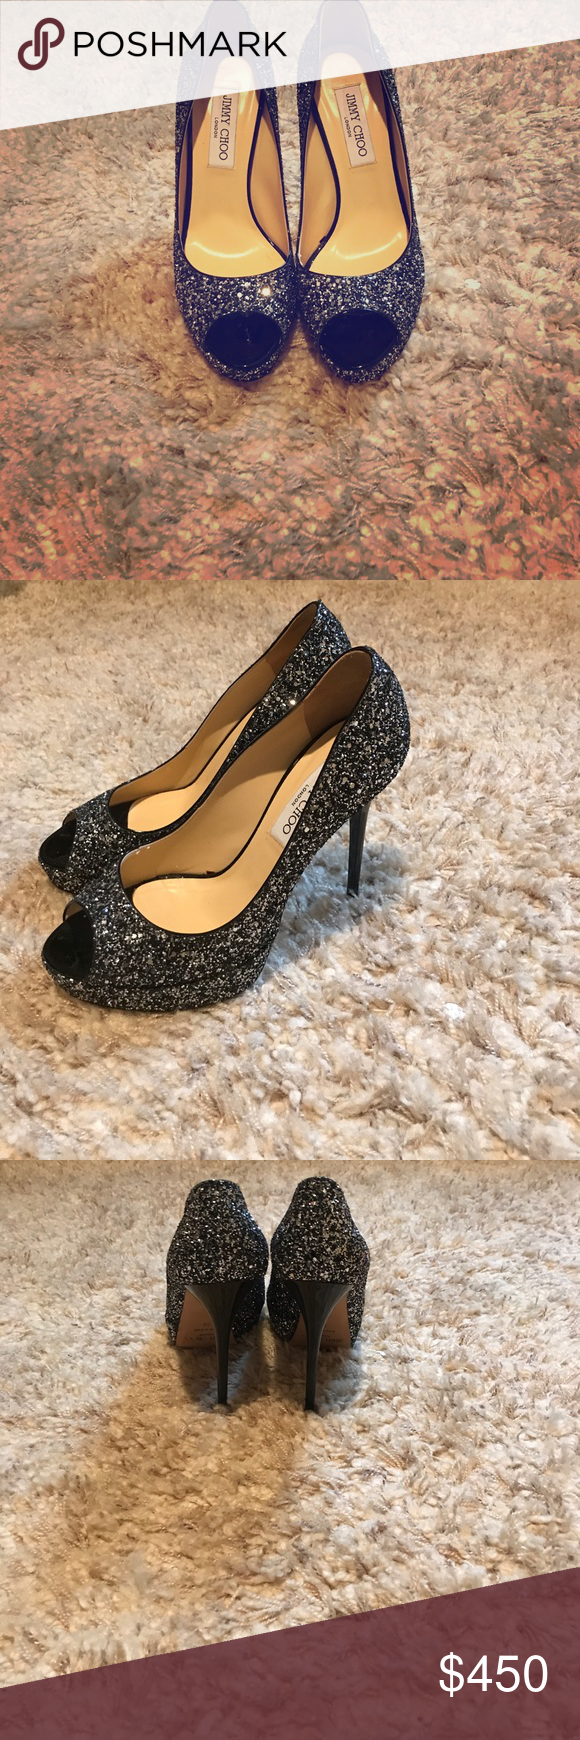 f67a9ca07bf Like new AUTHENTIC JIMMY CHOO black sparkle Black sparkle shoe with shiny black  heel. Hardly